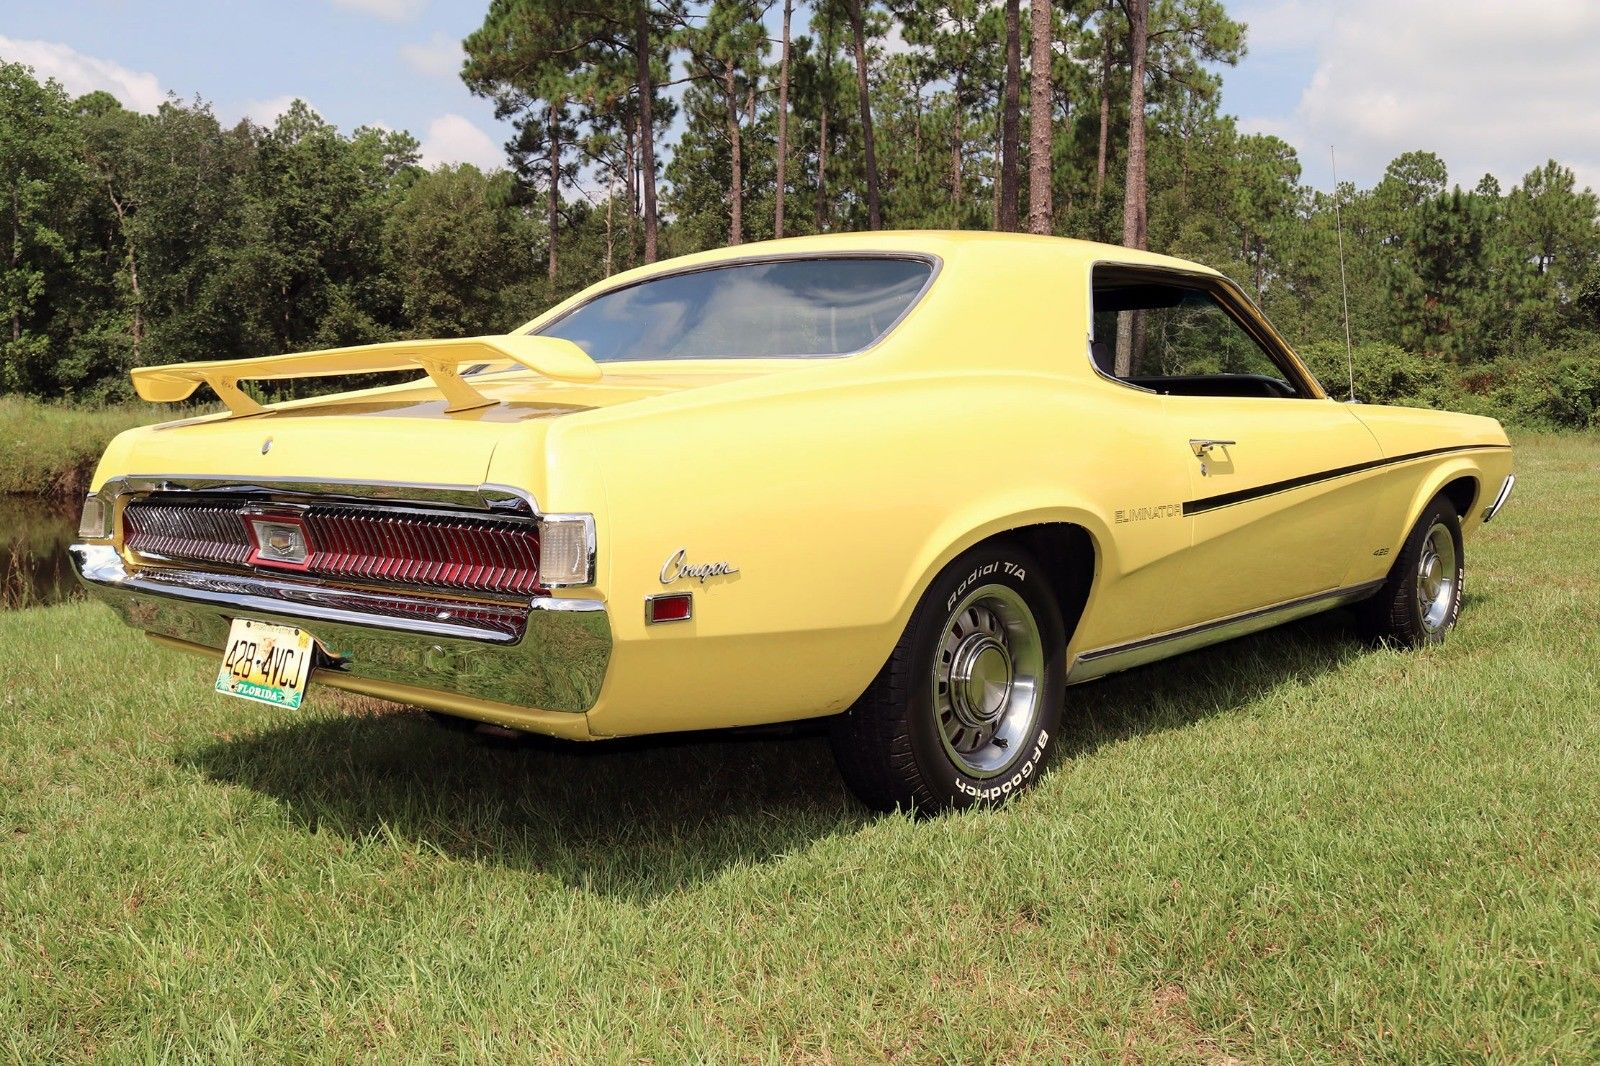 1969 Mercury Cougar Eliminator rear 3/4